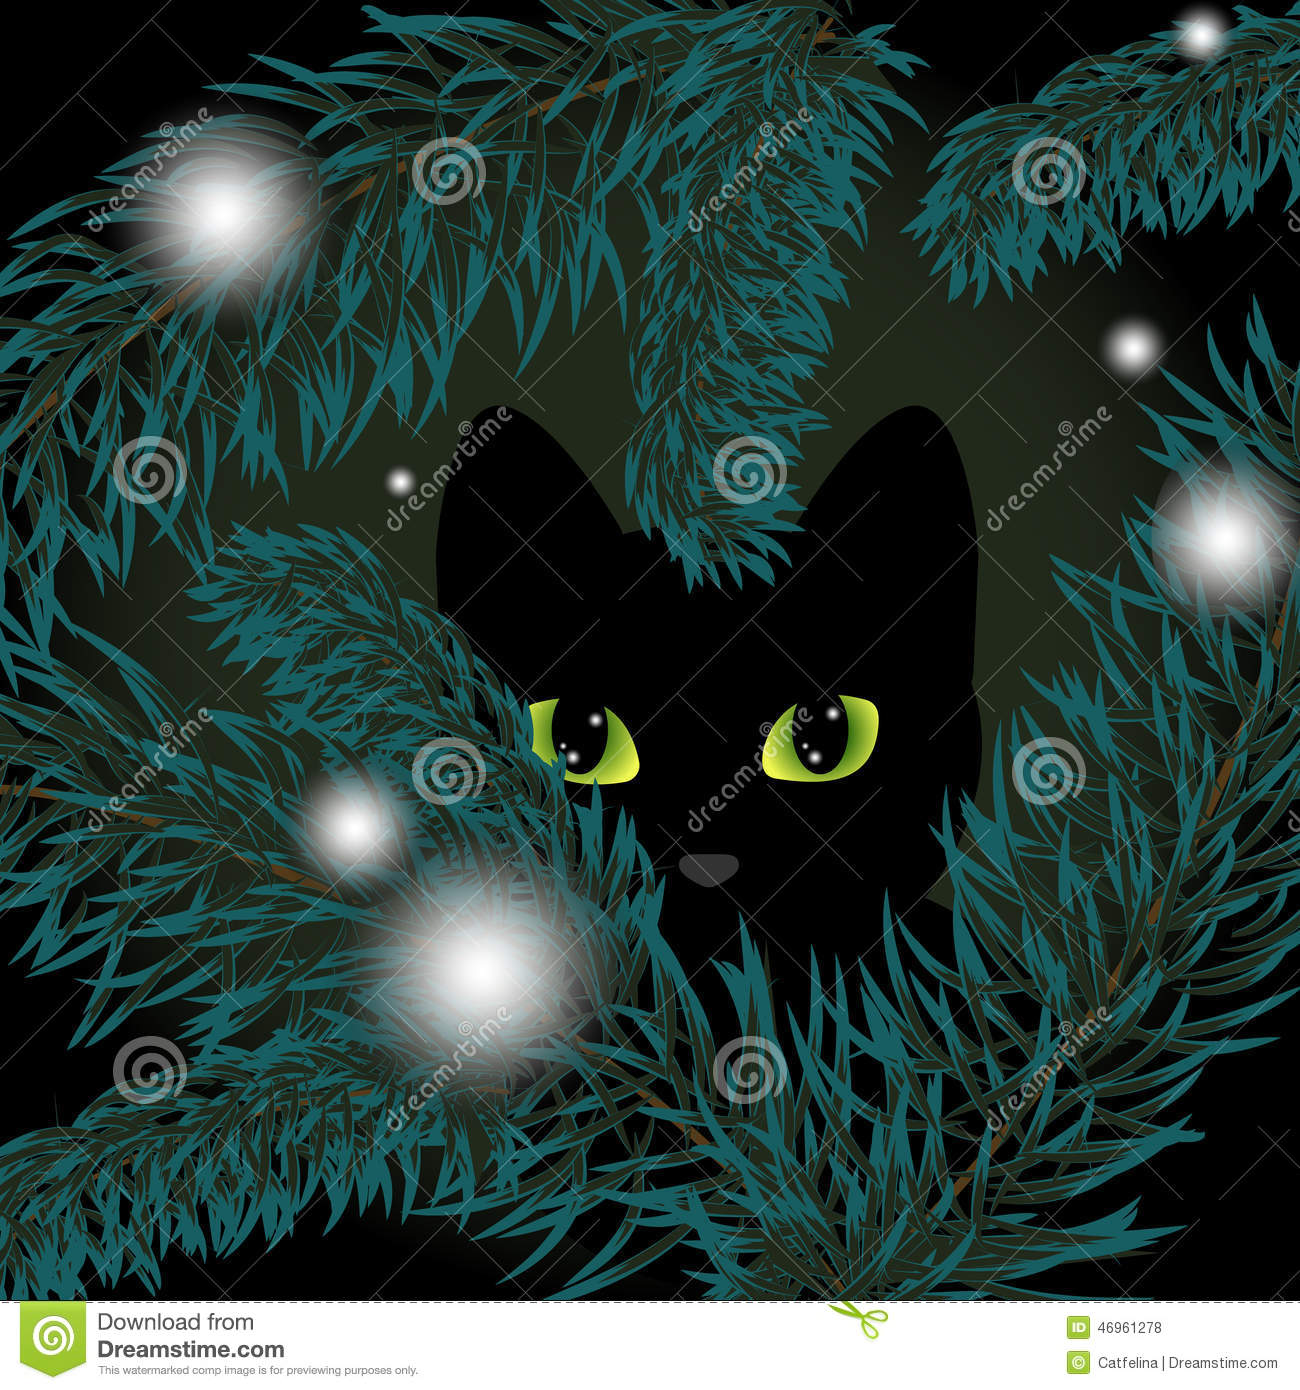 black cat christmas tree stock illustrations 275 black cat christmas tree stock illustrations vectors clipart dreamstime